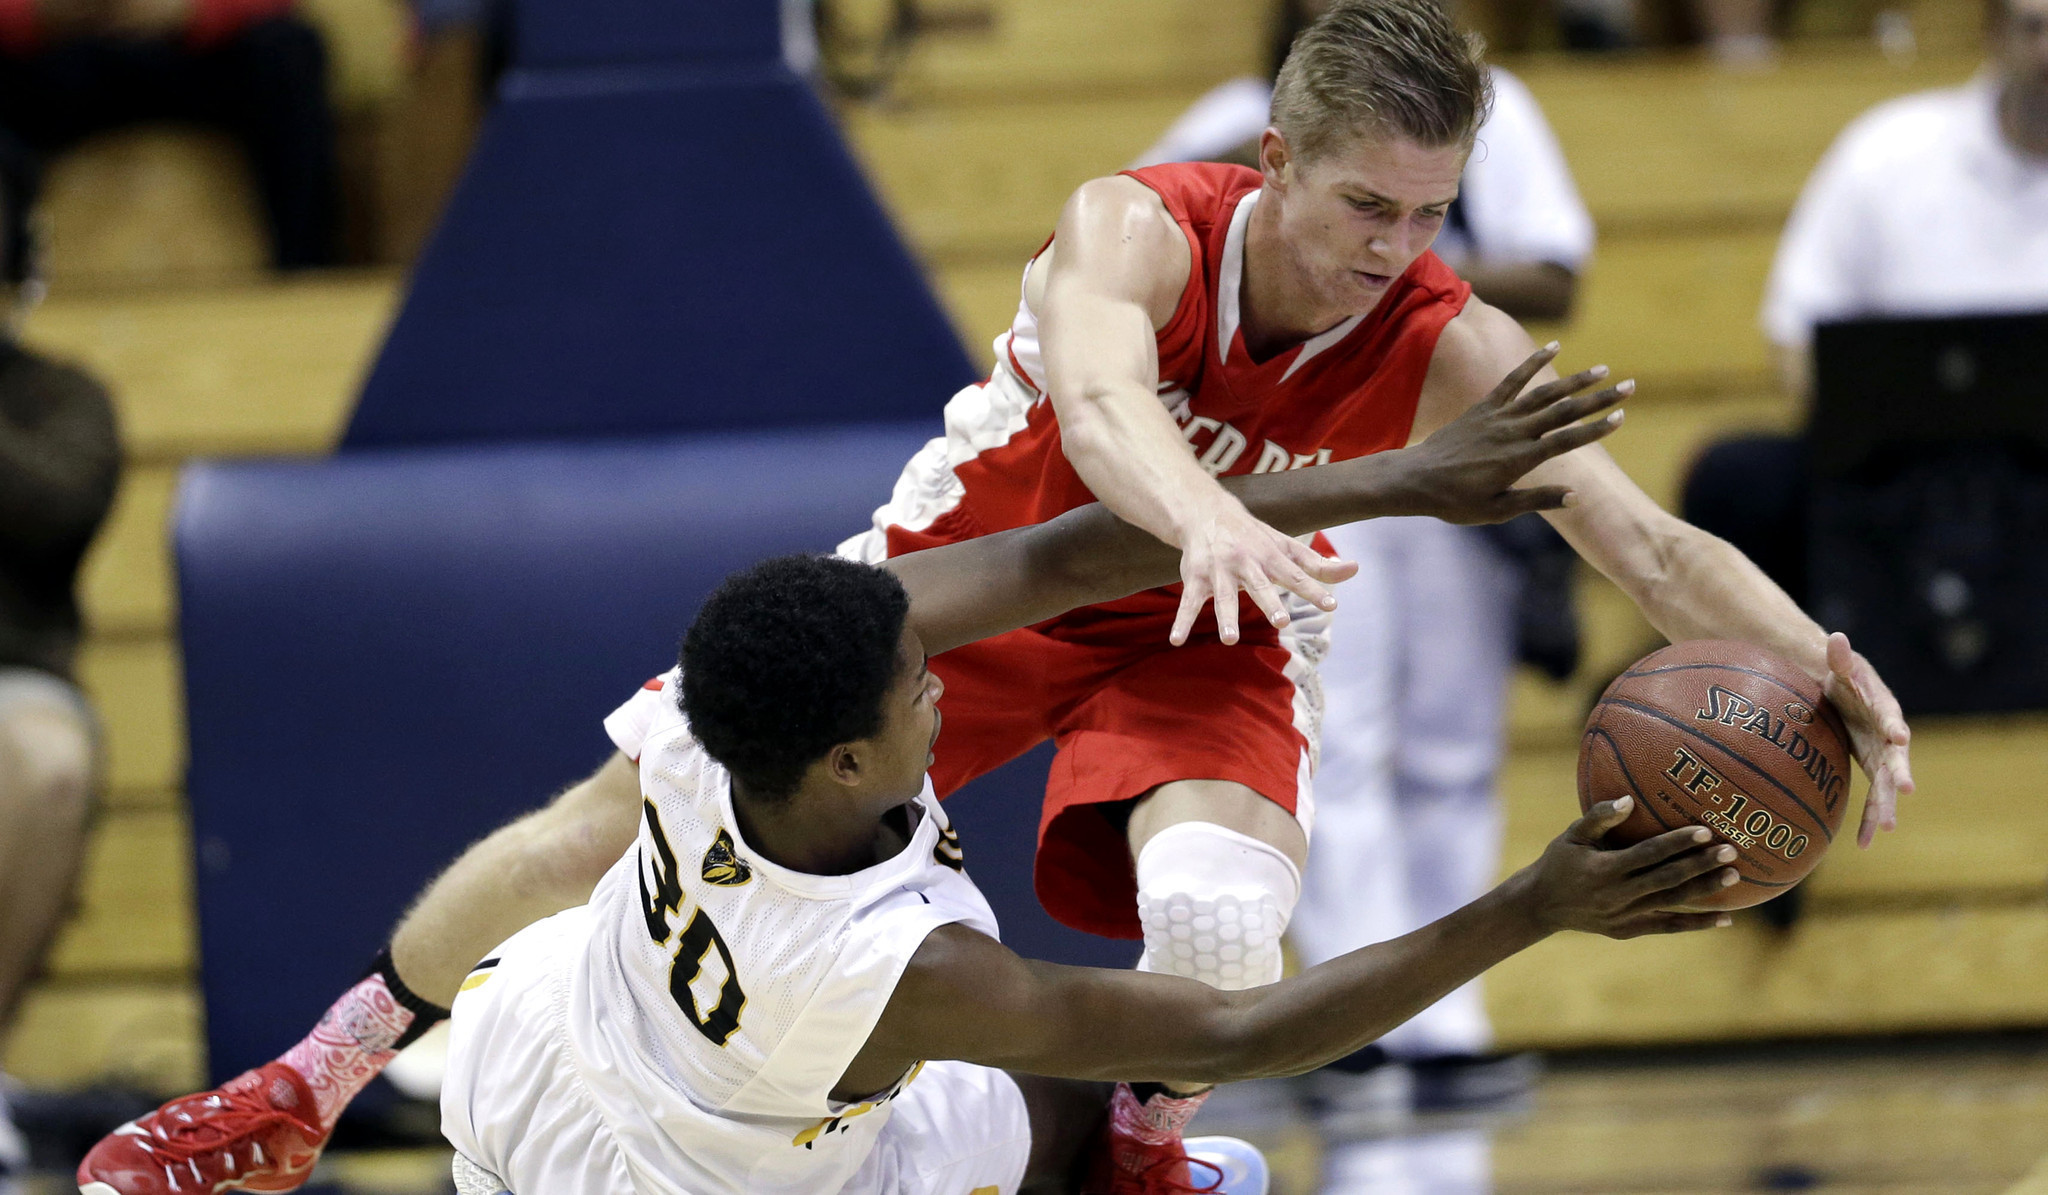 Mater Dei-Bishop O'Dowd basketball title game fittingly caps weekend